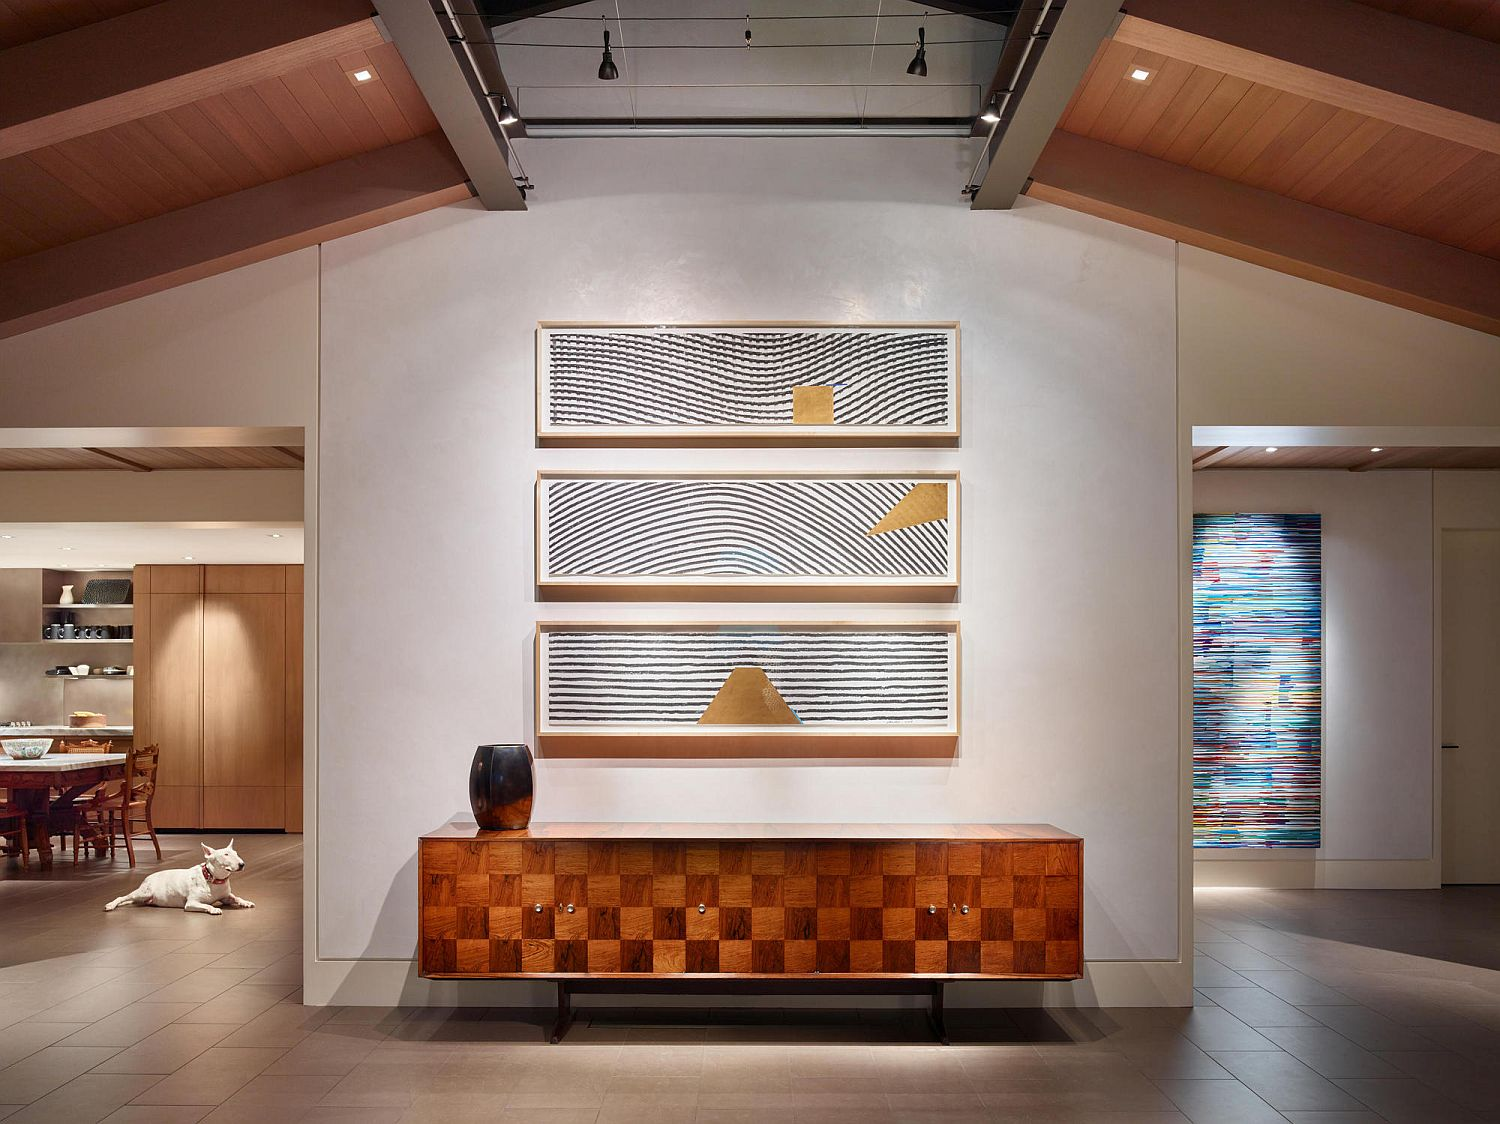 Credenza adds warmth and elegance to the entrance